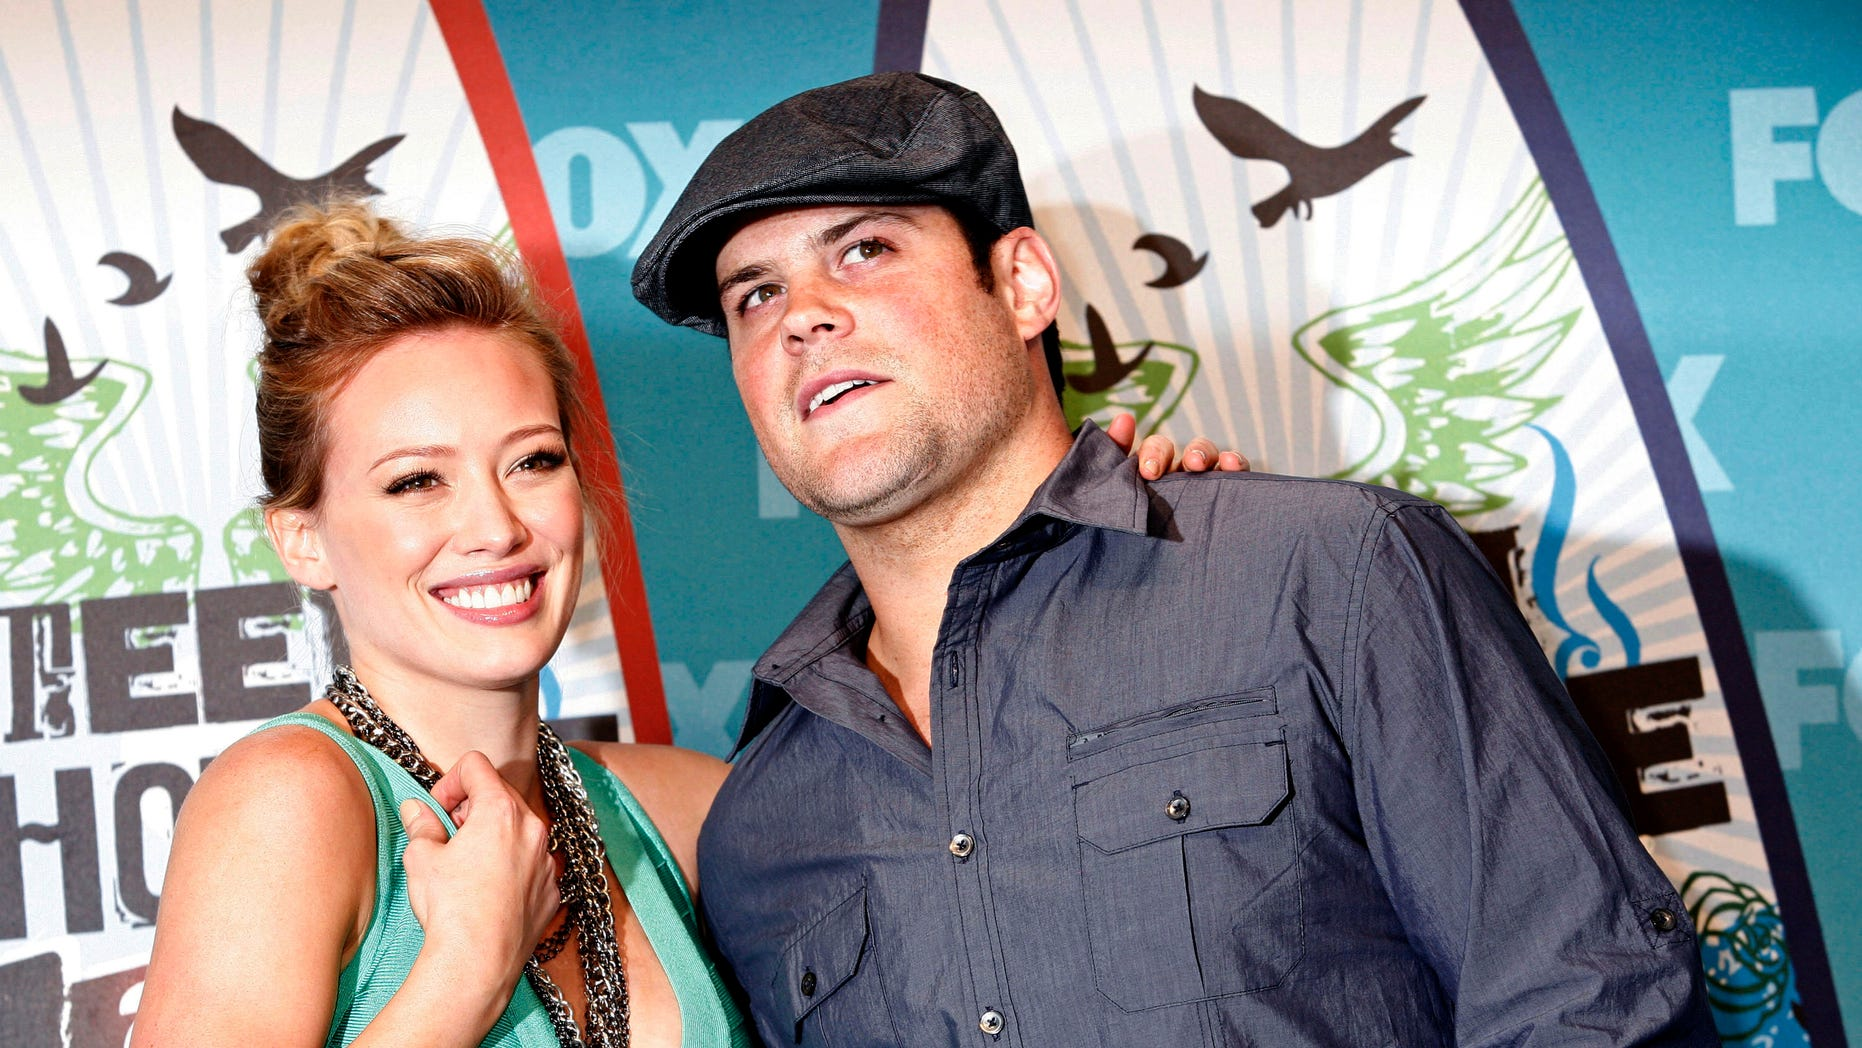 August 8, 2010. Actress and singer Hilary Duff and hockey player Mike Comrie pose in the press room at the Teen Choice 2010 Awards in Los Angeles.